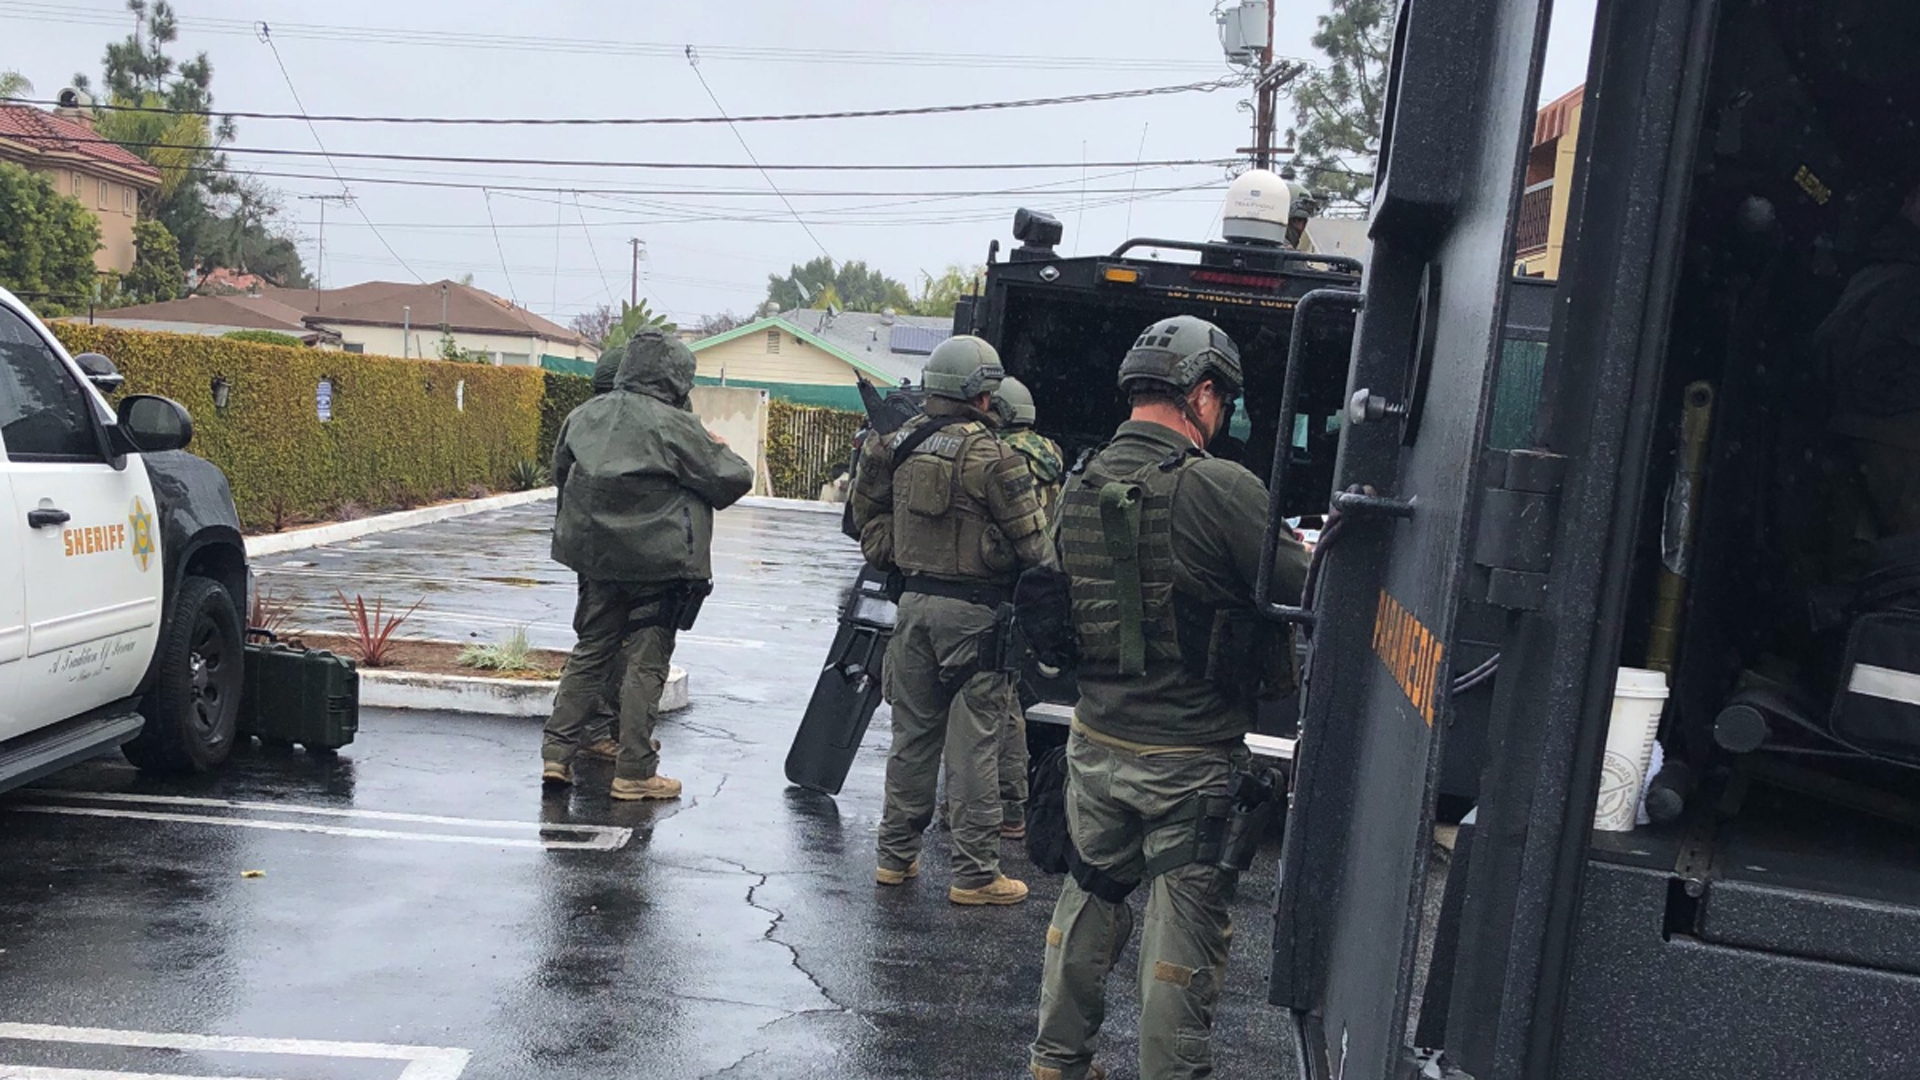 The Los Angeles County Sheriff's Department tweeted this photo of authorities responding to a barricaded situation outside a hotel in Culver City on Jan 7, 2019.